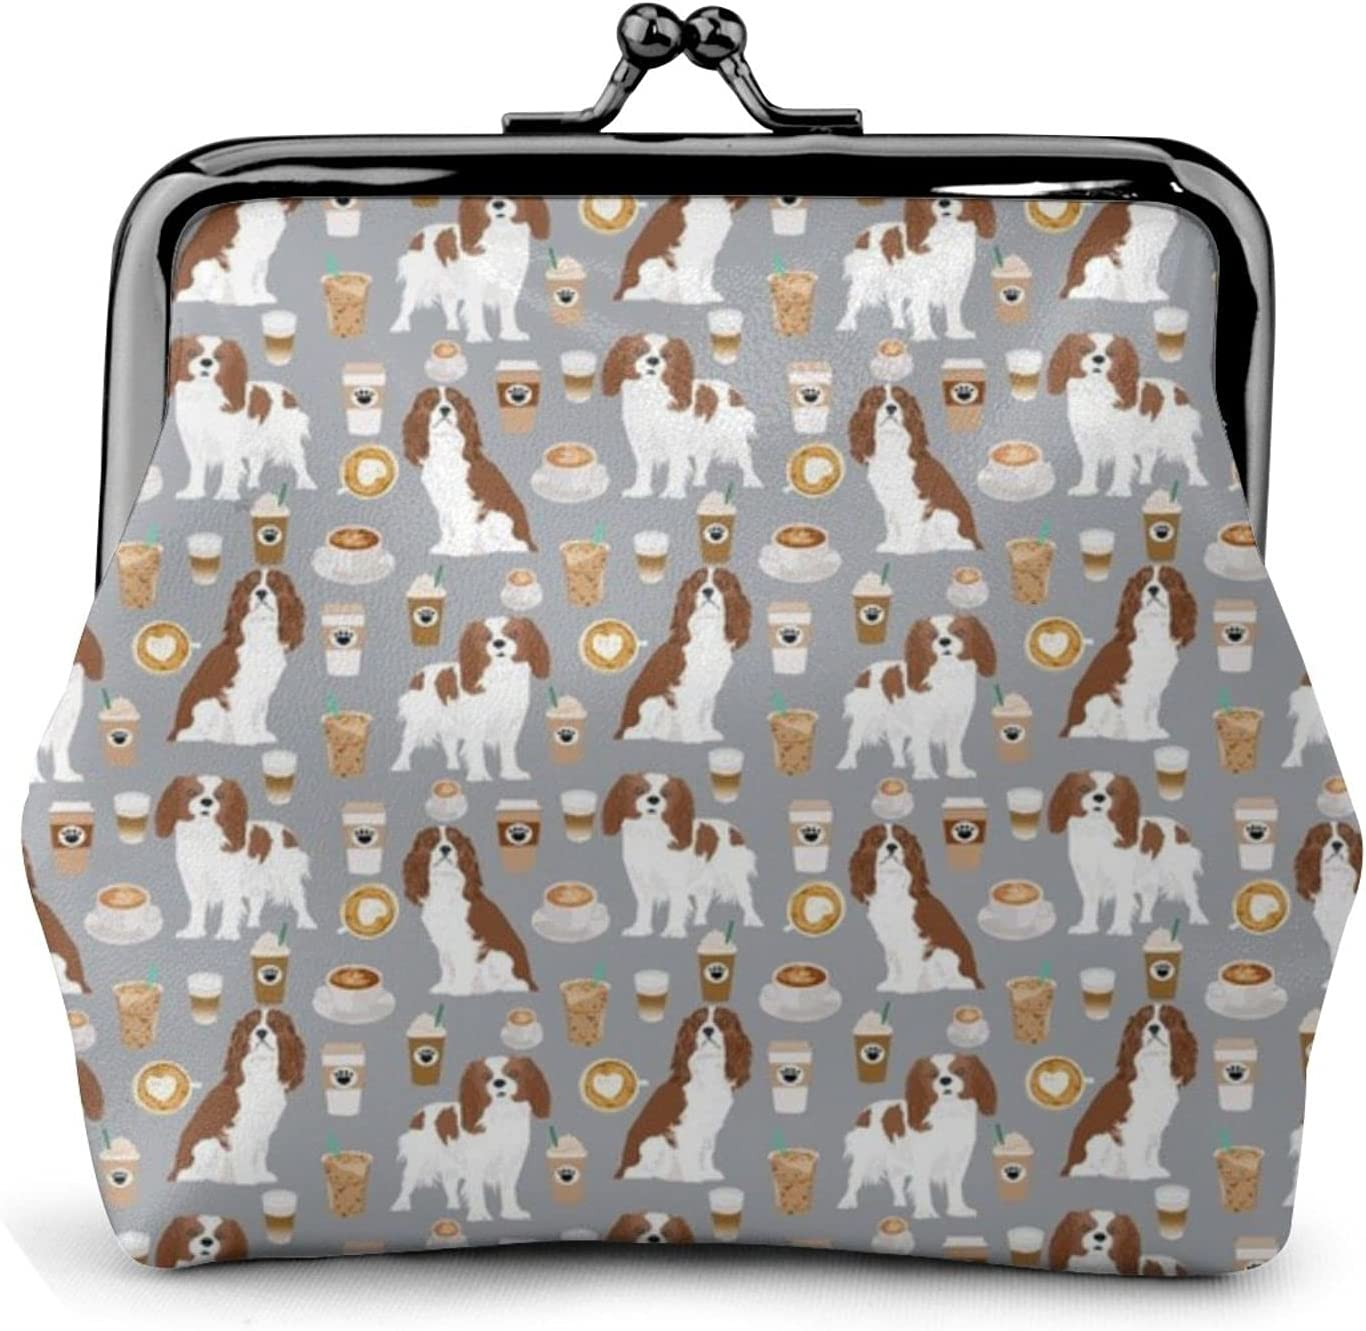 Cavalier King Charles 1435 Coin Purse Retro Money Pouch with Kiss-lock Buckle Small Wallet for Women and Girls